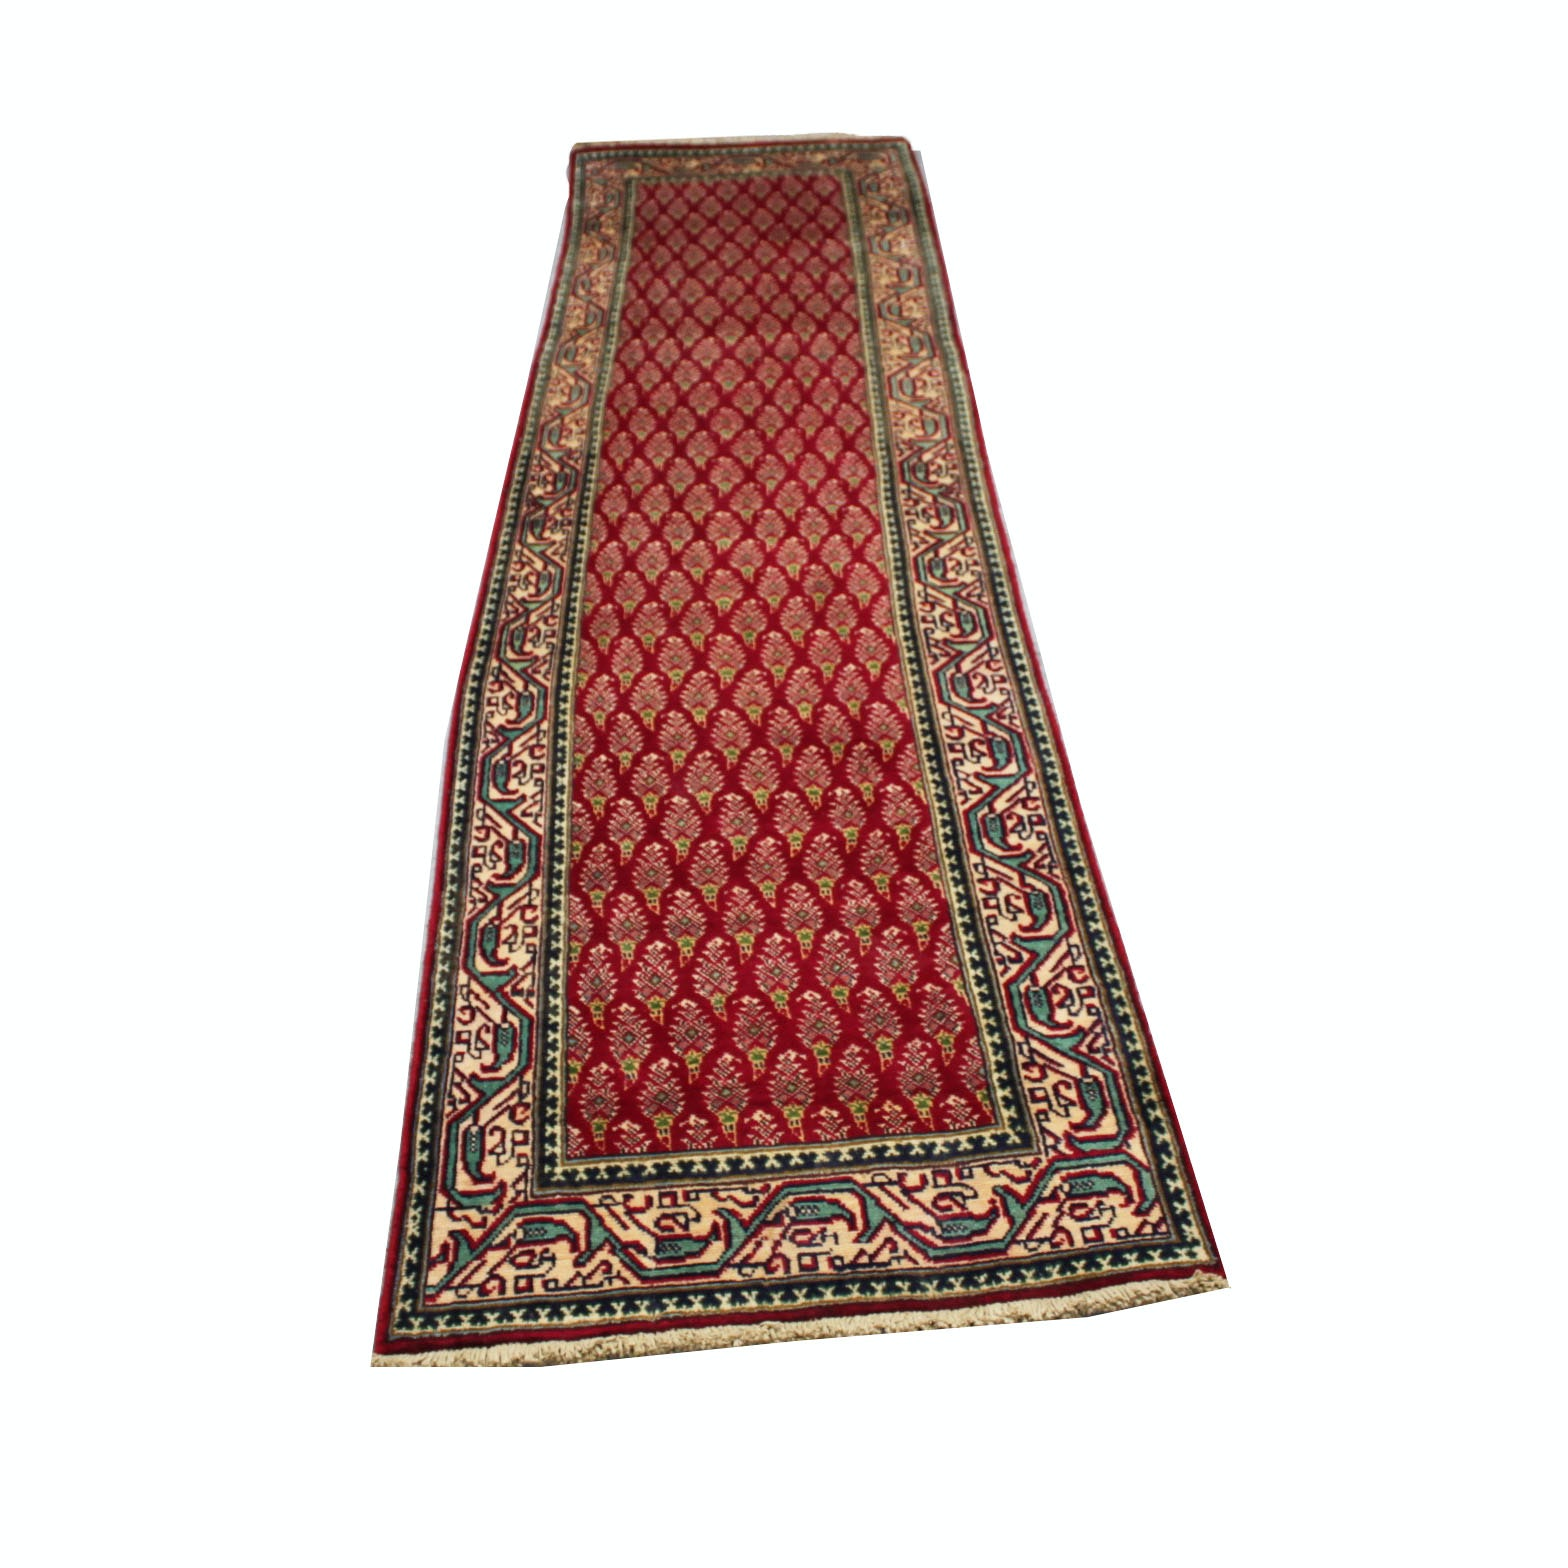 Vintage Hand-Knotted Persian Tabriz Wool Carpet Runner